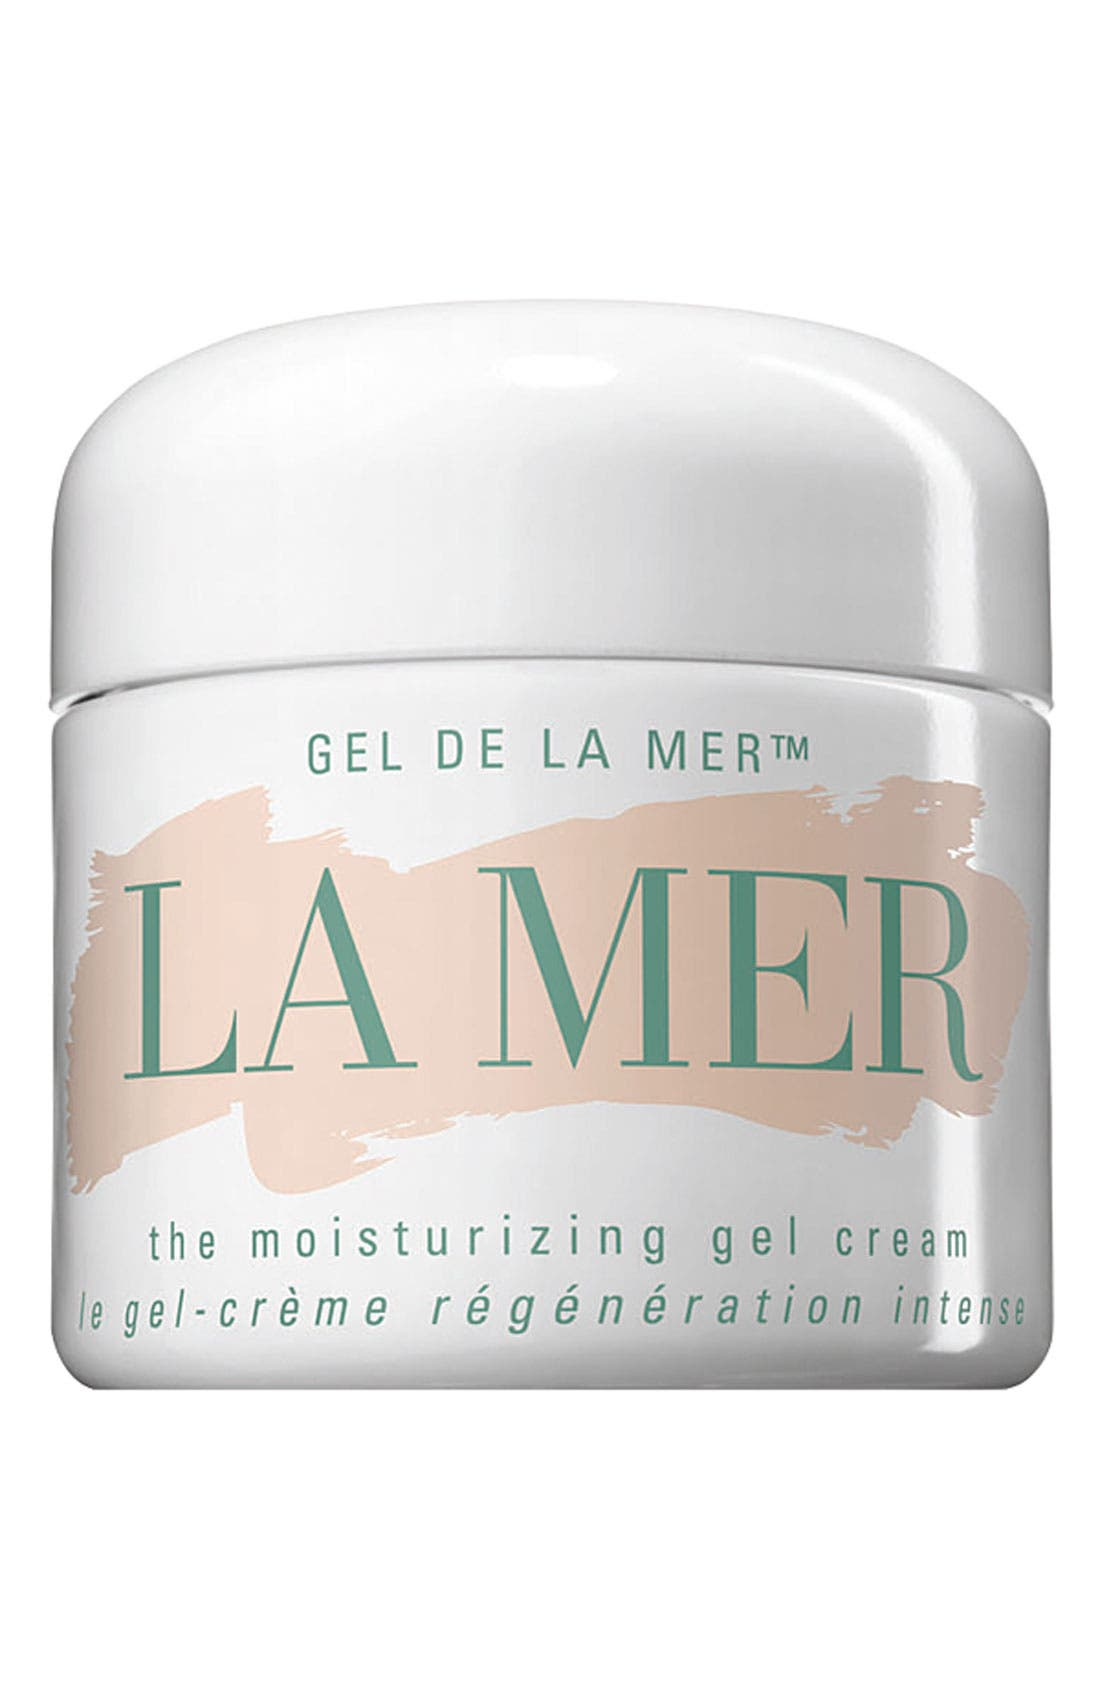 La Mer 'The Moisturizing Gel Cream' Ultralight Gel